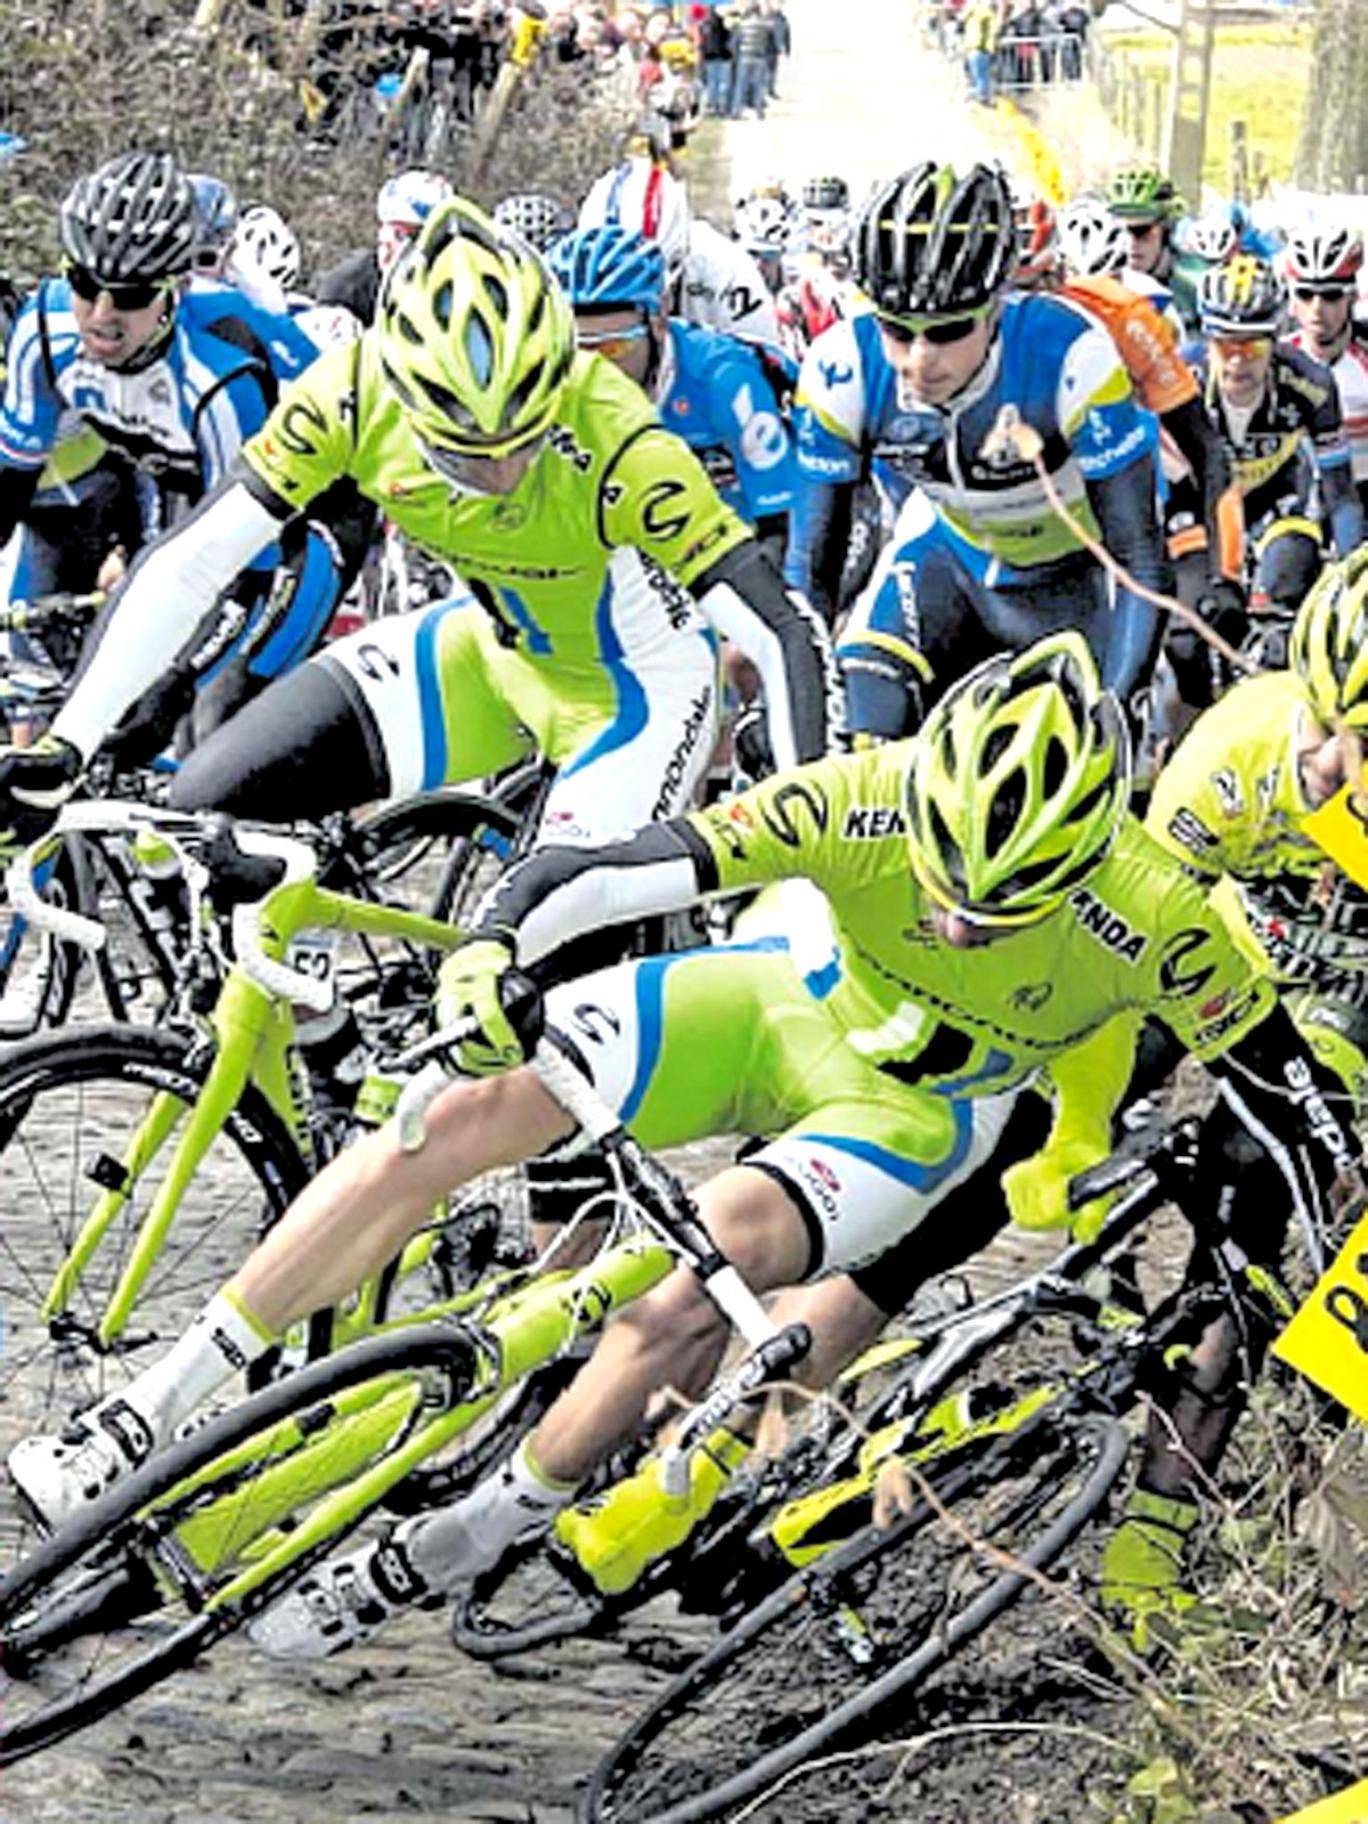 Riders become tangled up during the Tour of Flanders